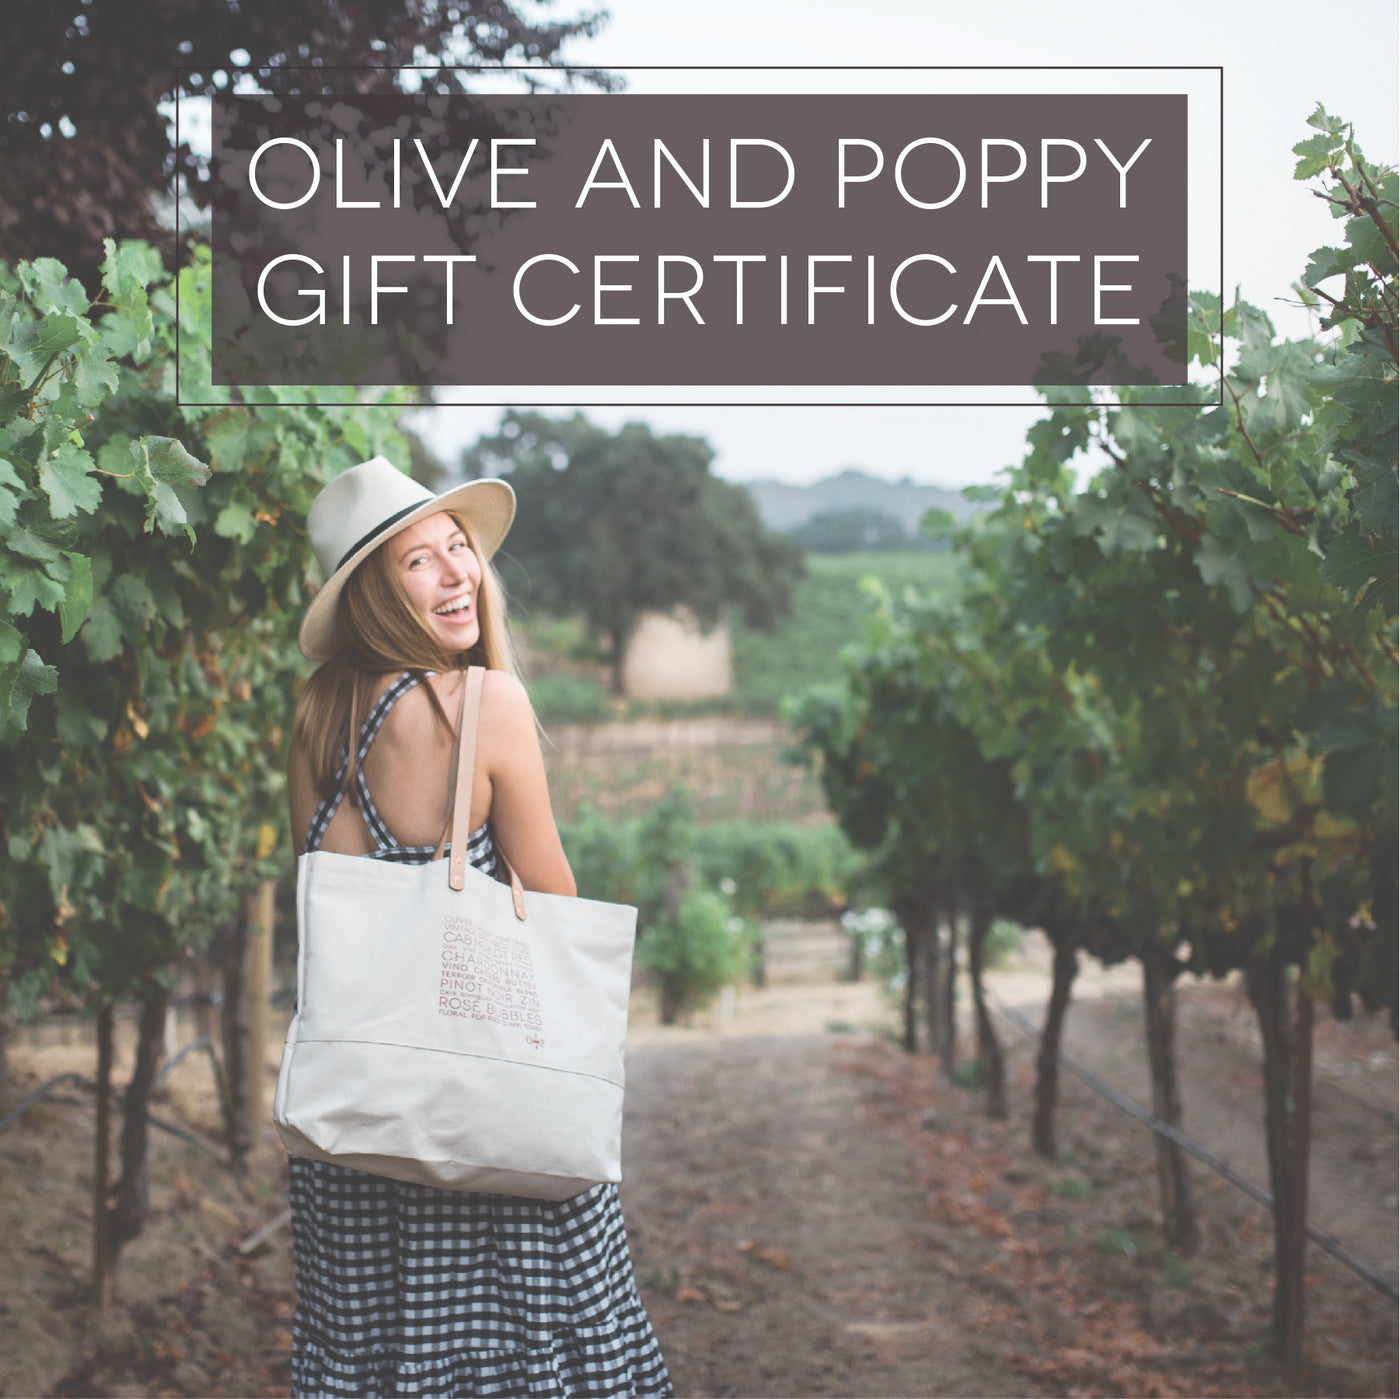 Olive and Poppy Gift Certificate